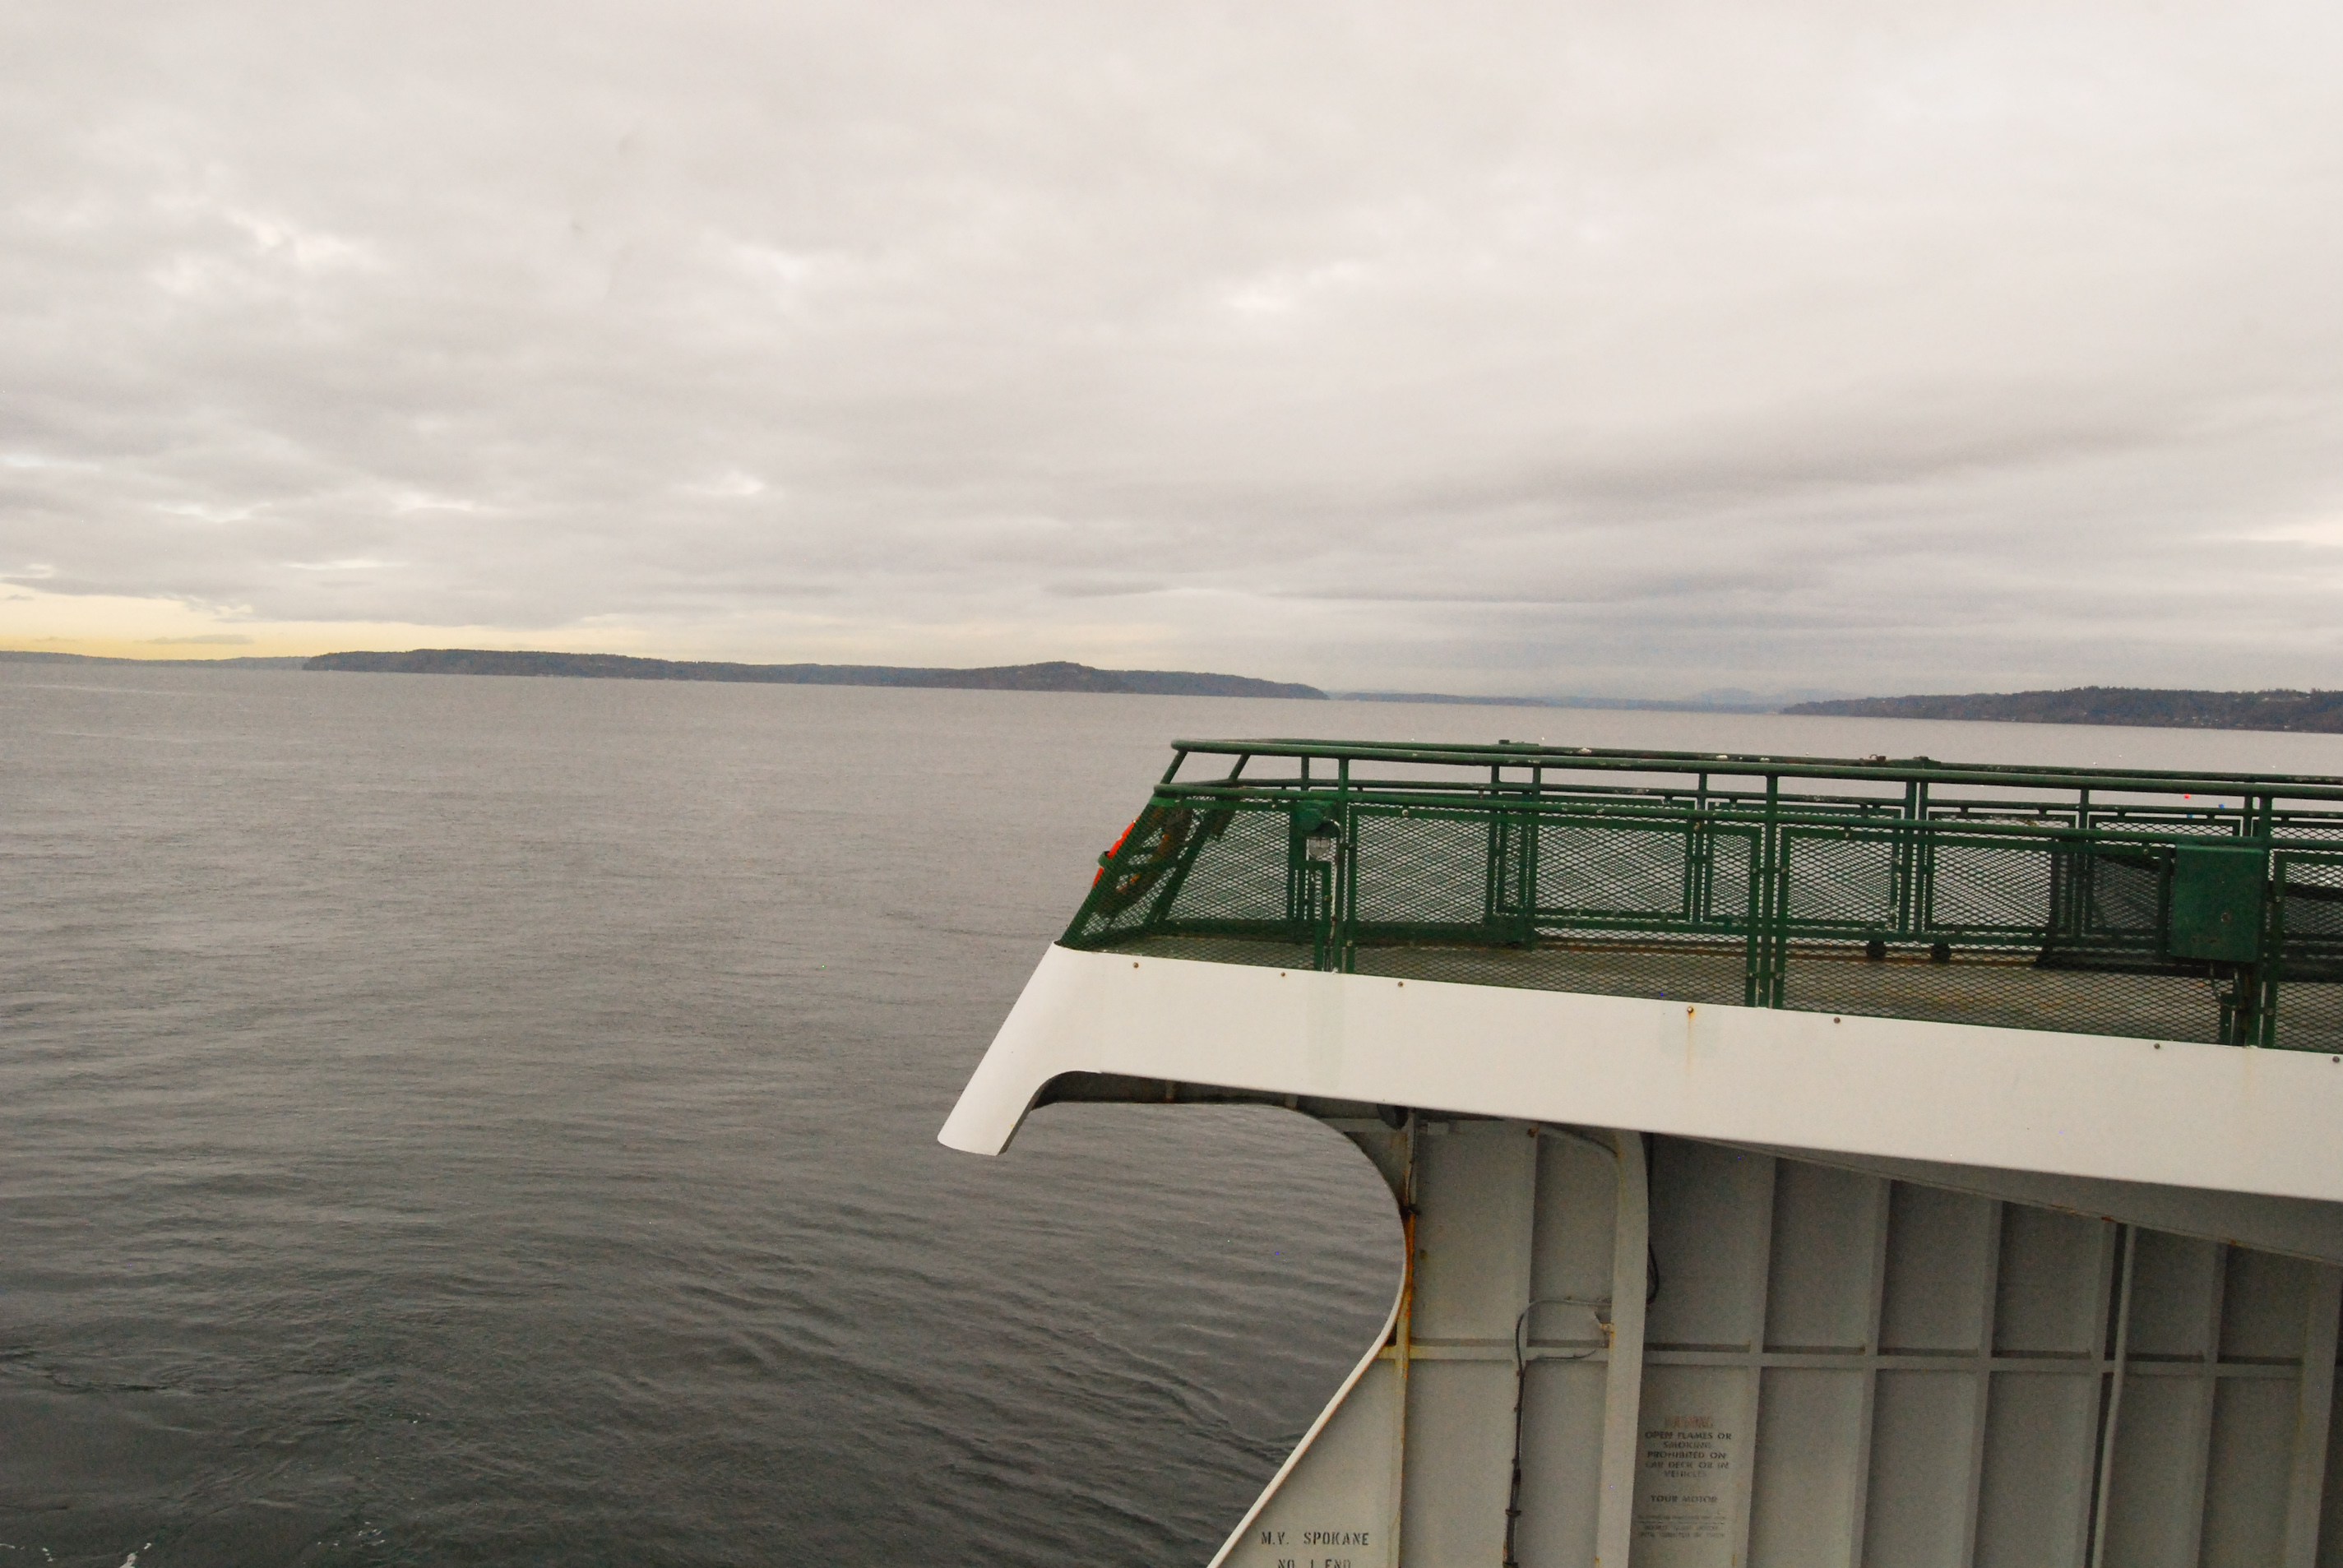 Port Gamble is a quick ferry ride from the Edmonds Ferry dock (Rebecca Mongrain/Seattle Refined)